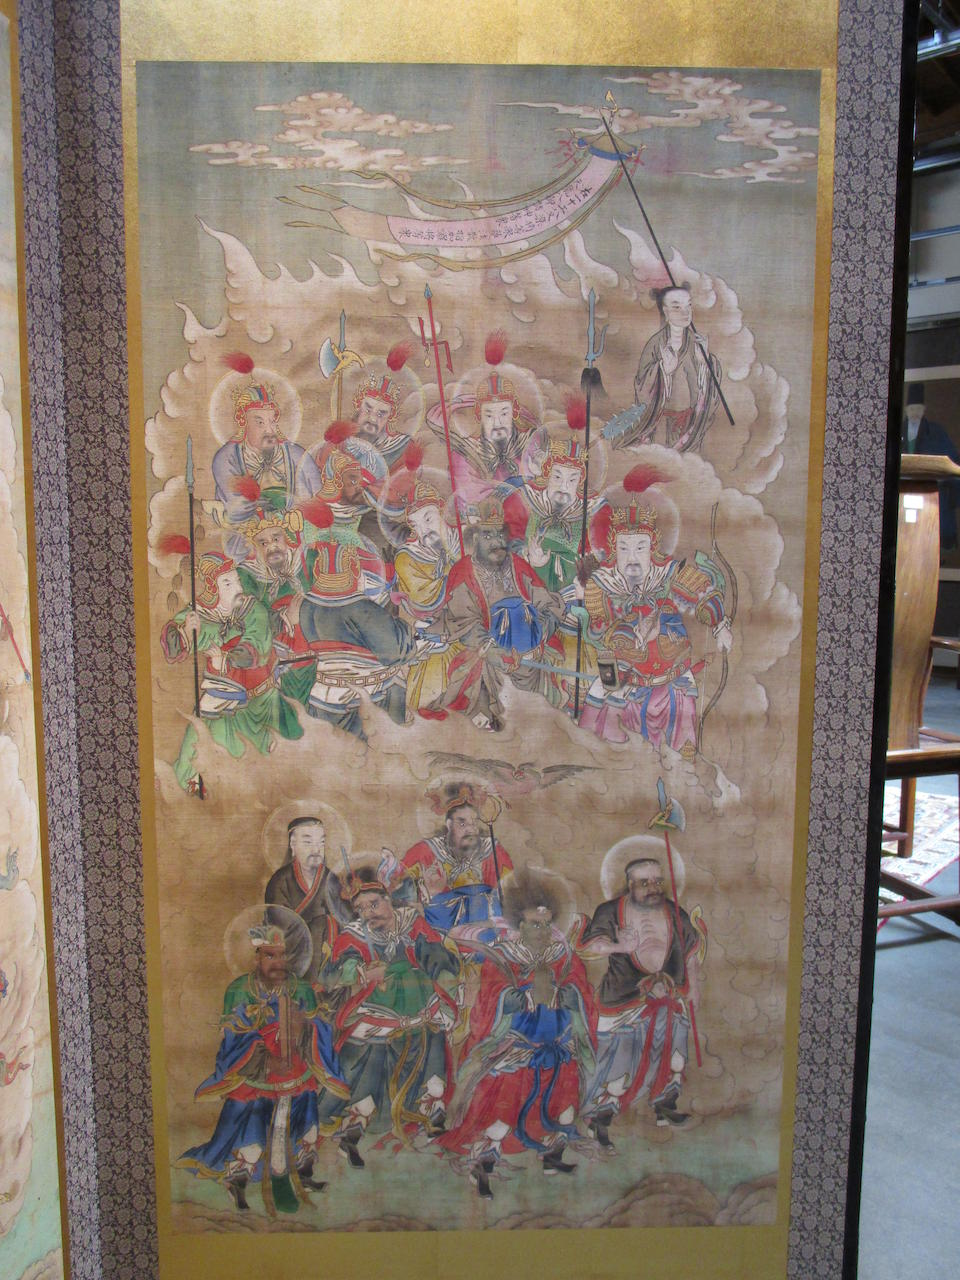 Anonymous (19th/20th century) Two Water Ritual paintings mounted as a folding screen